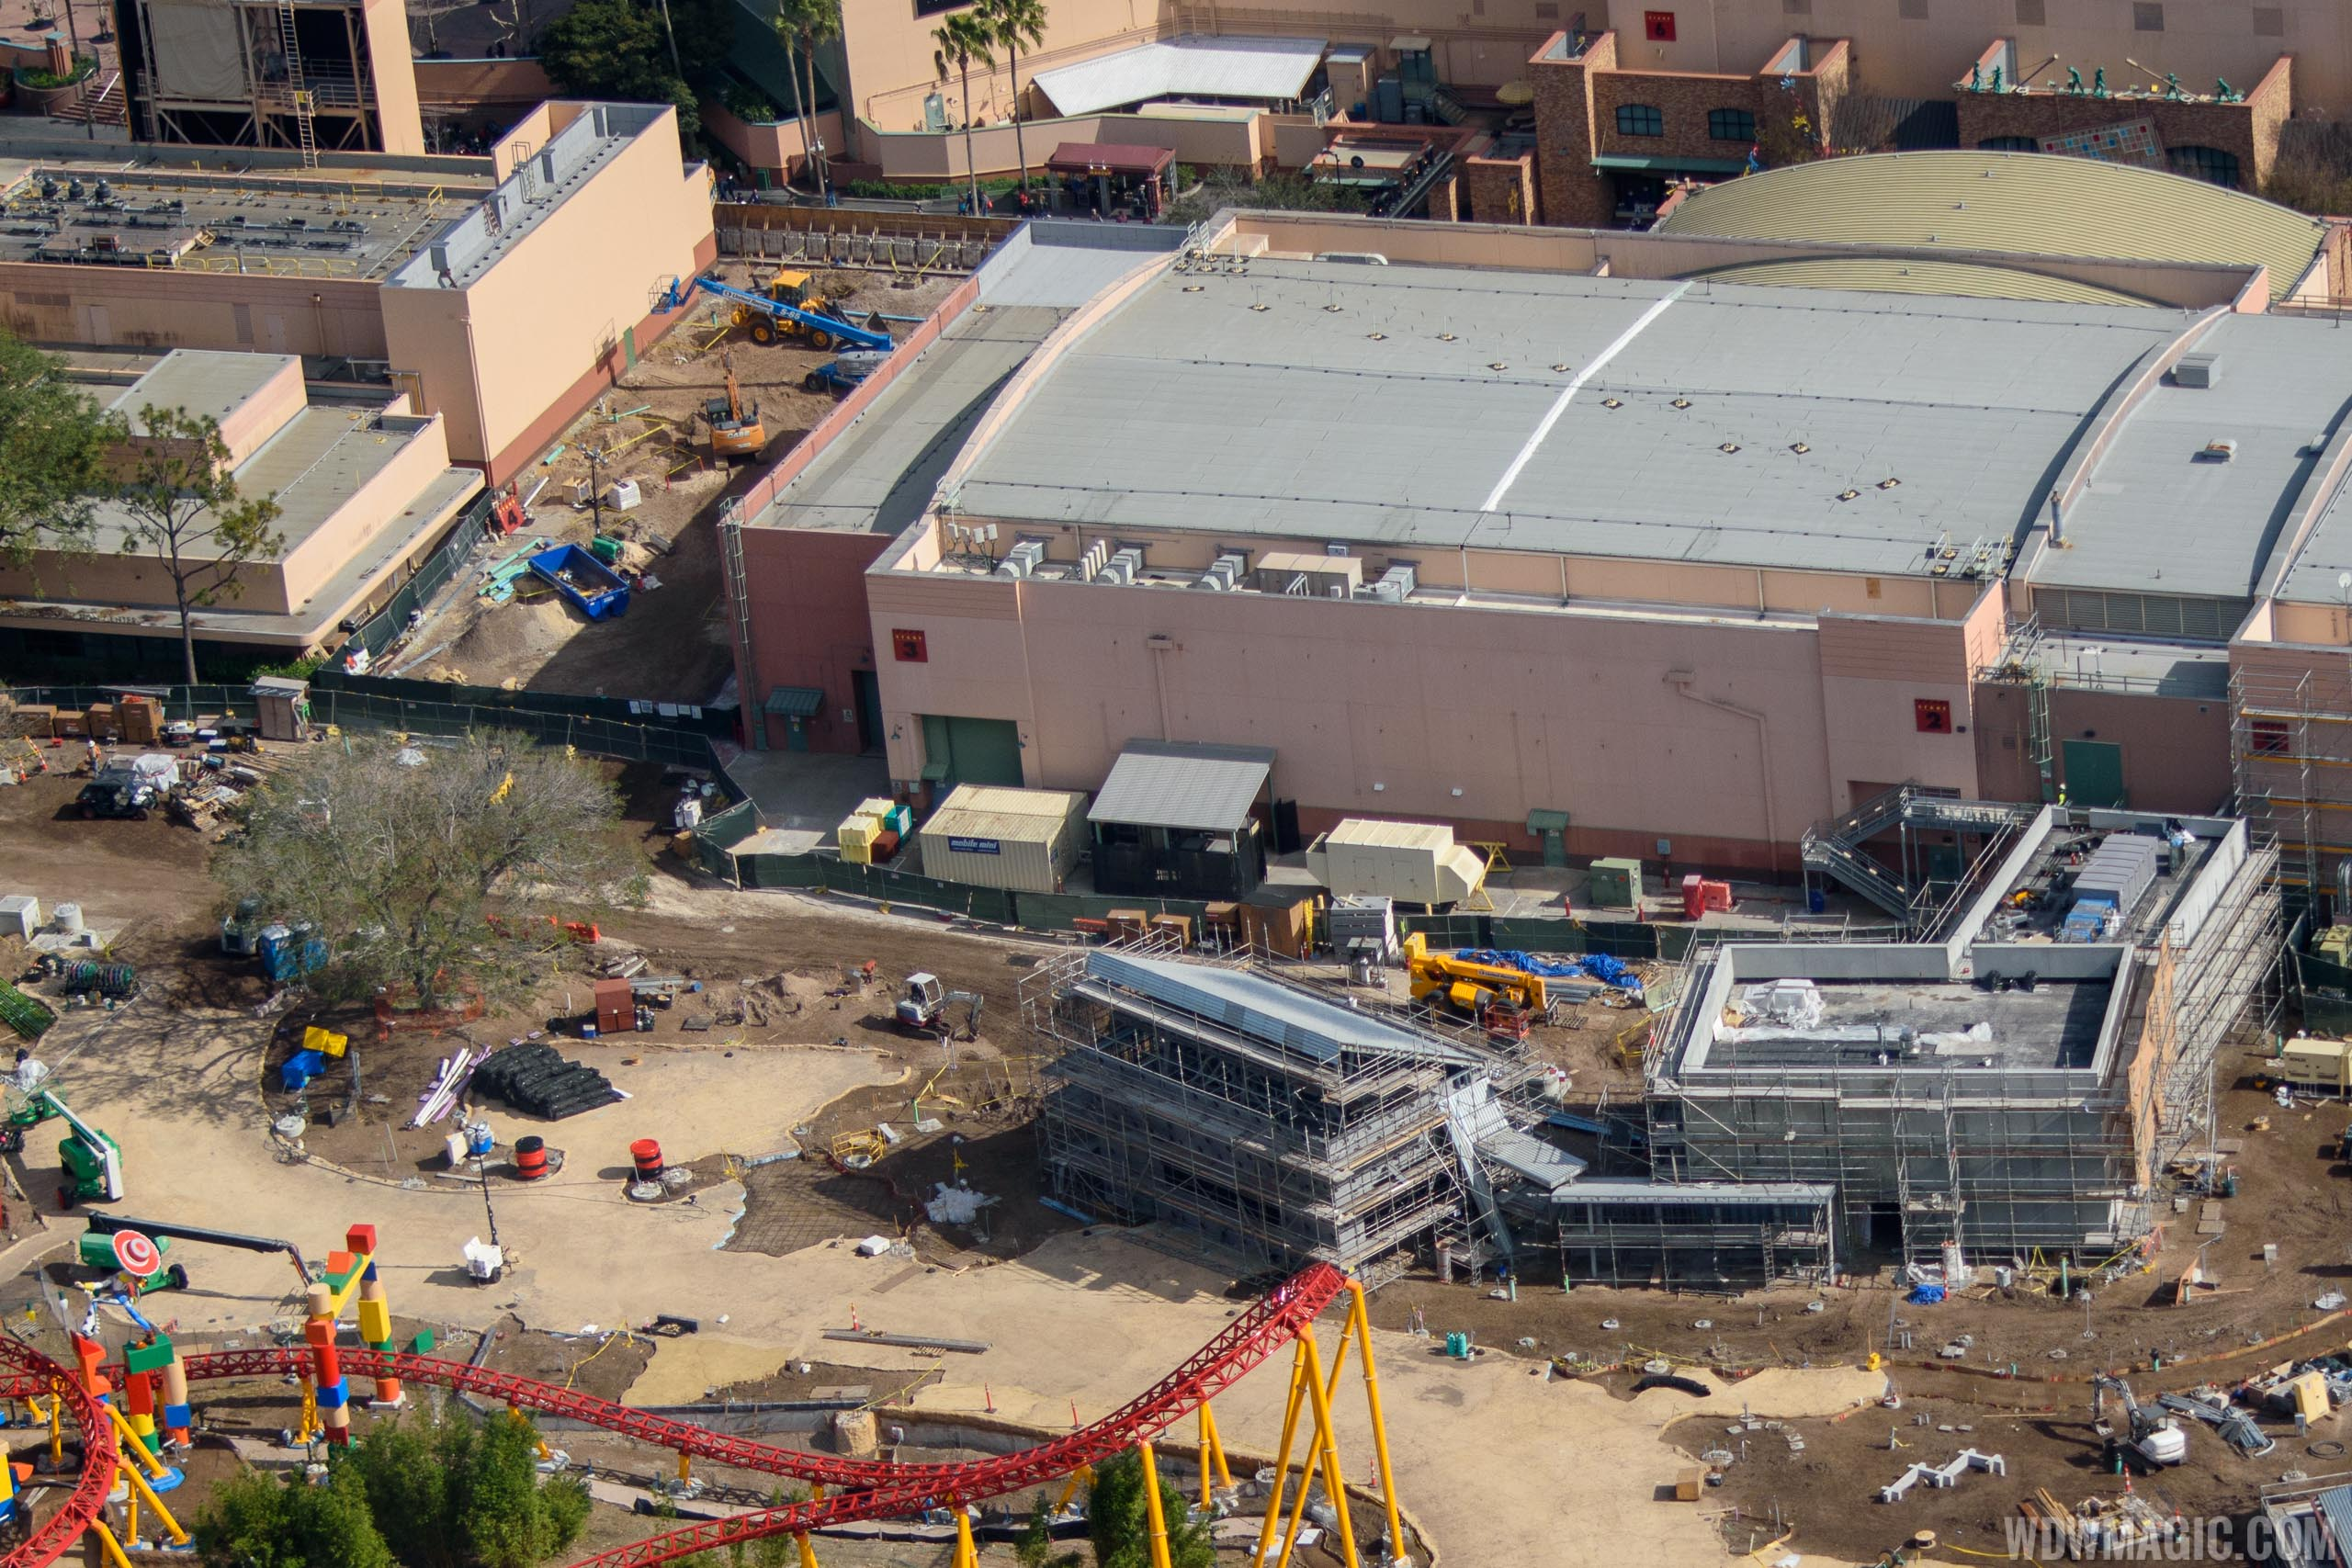 Entrance to Toy Story Land top left, and Entrance to Toy Story Mania right